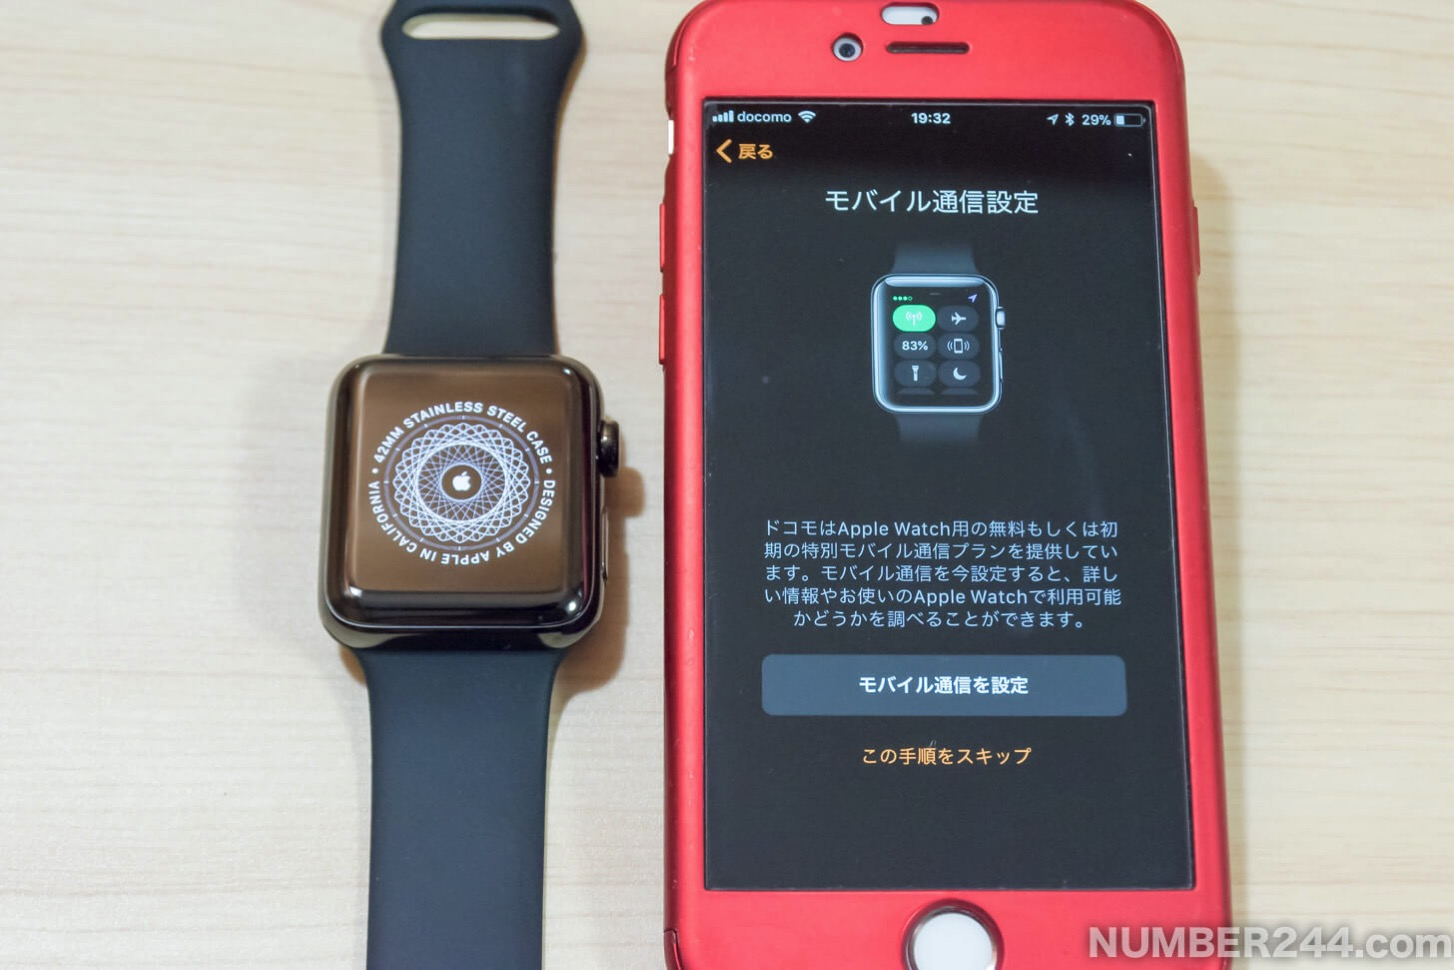 Initial setting of Apple Watch 18